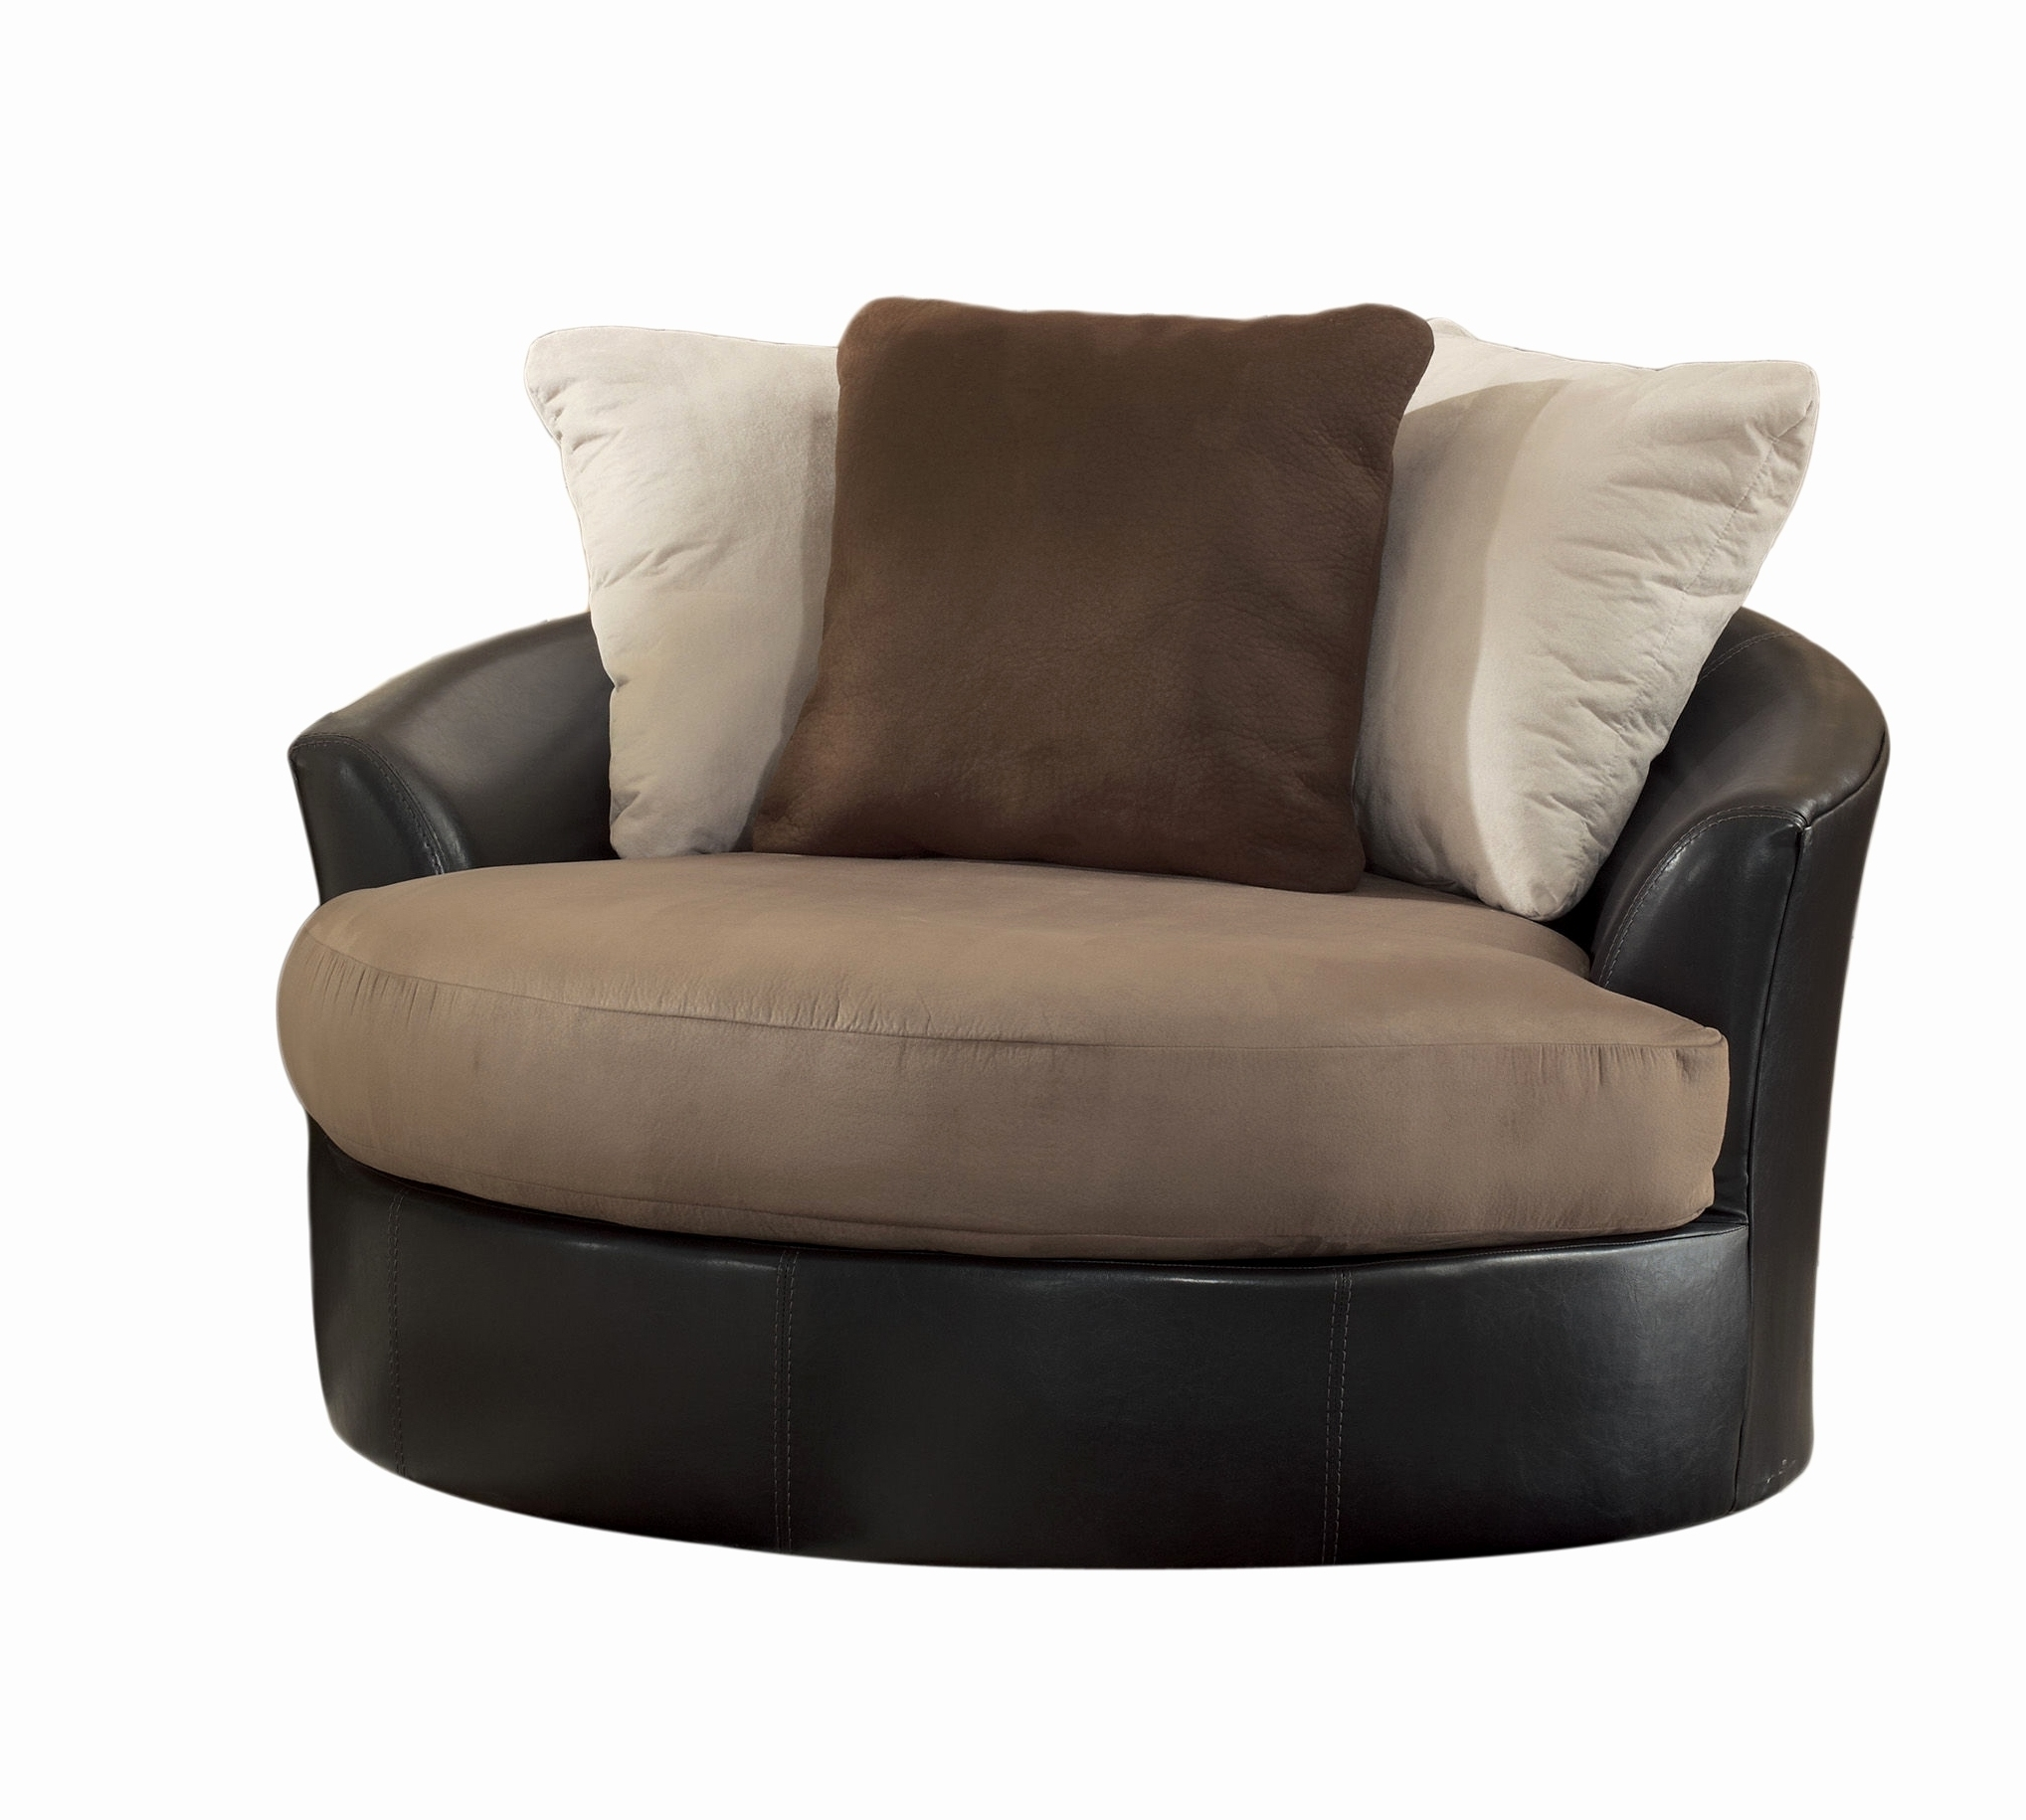 Sofas With Swivel Chair Throughout Most Recent Sofas : Armchair Big Round Swivel Chair Circle Swivel Chair Small (View 14 of 15)